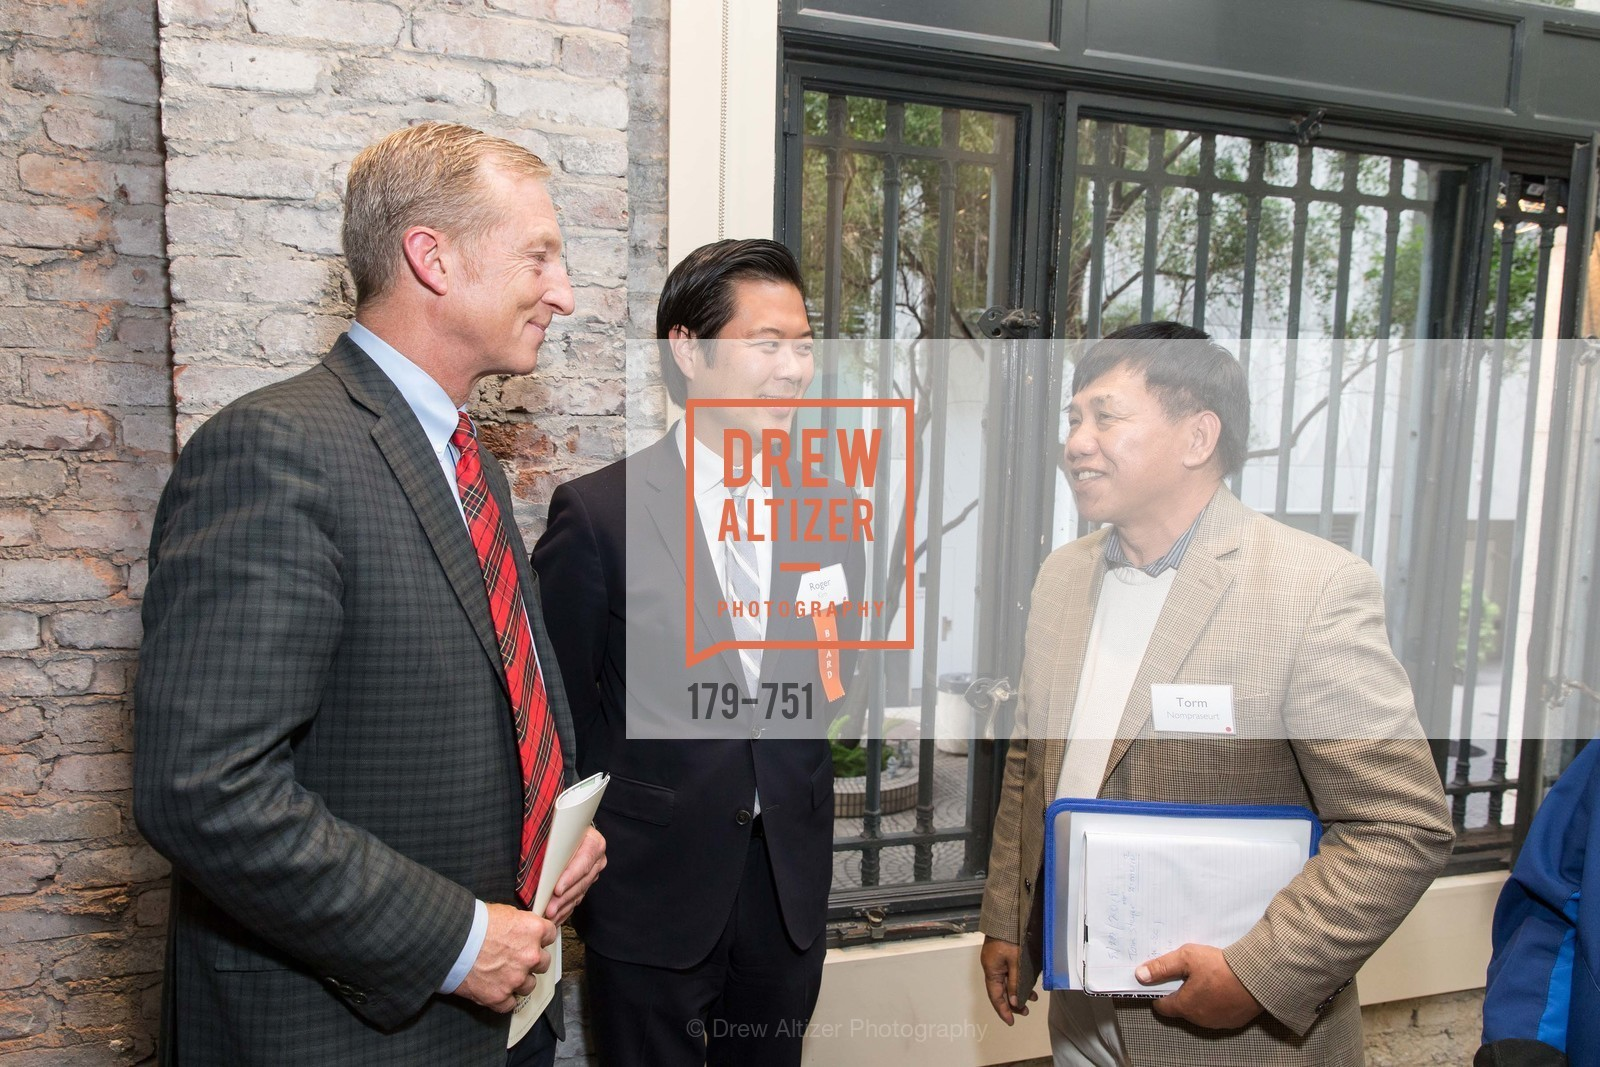 Tom Steyer, Roger Kim, Torm Nompraseurt, CENTER FOR ENVIRONMENTAL HEALTH (CEH) 2015 Gala, Bently Reserve, May 28th, 2015,Drew Altizer, Drew Altizer Photography, full-service agency, private events, San Francisco photographer, photographer california